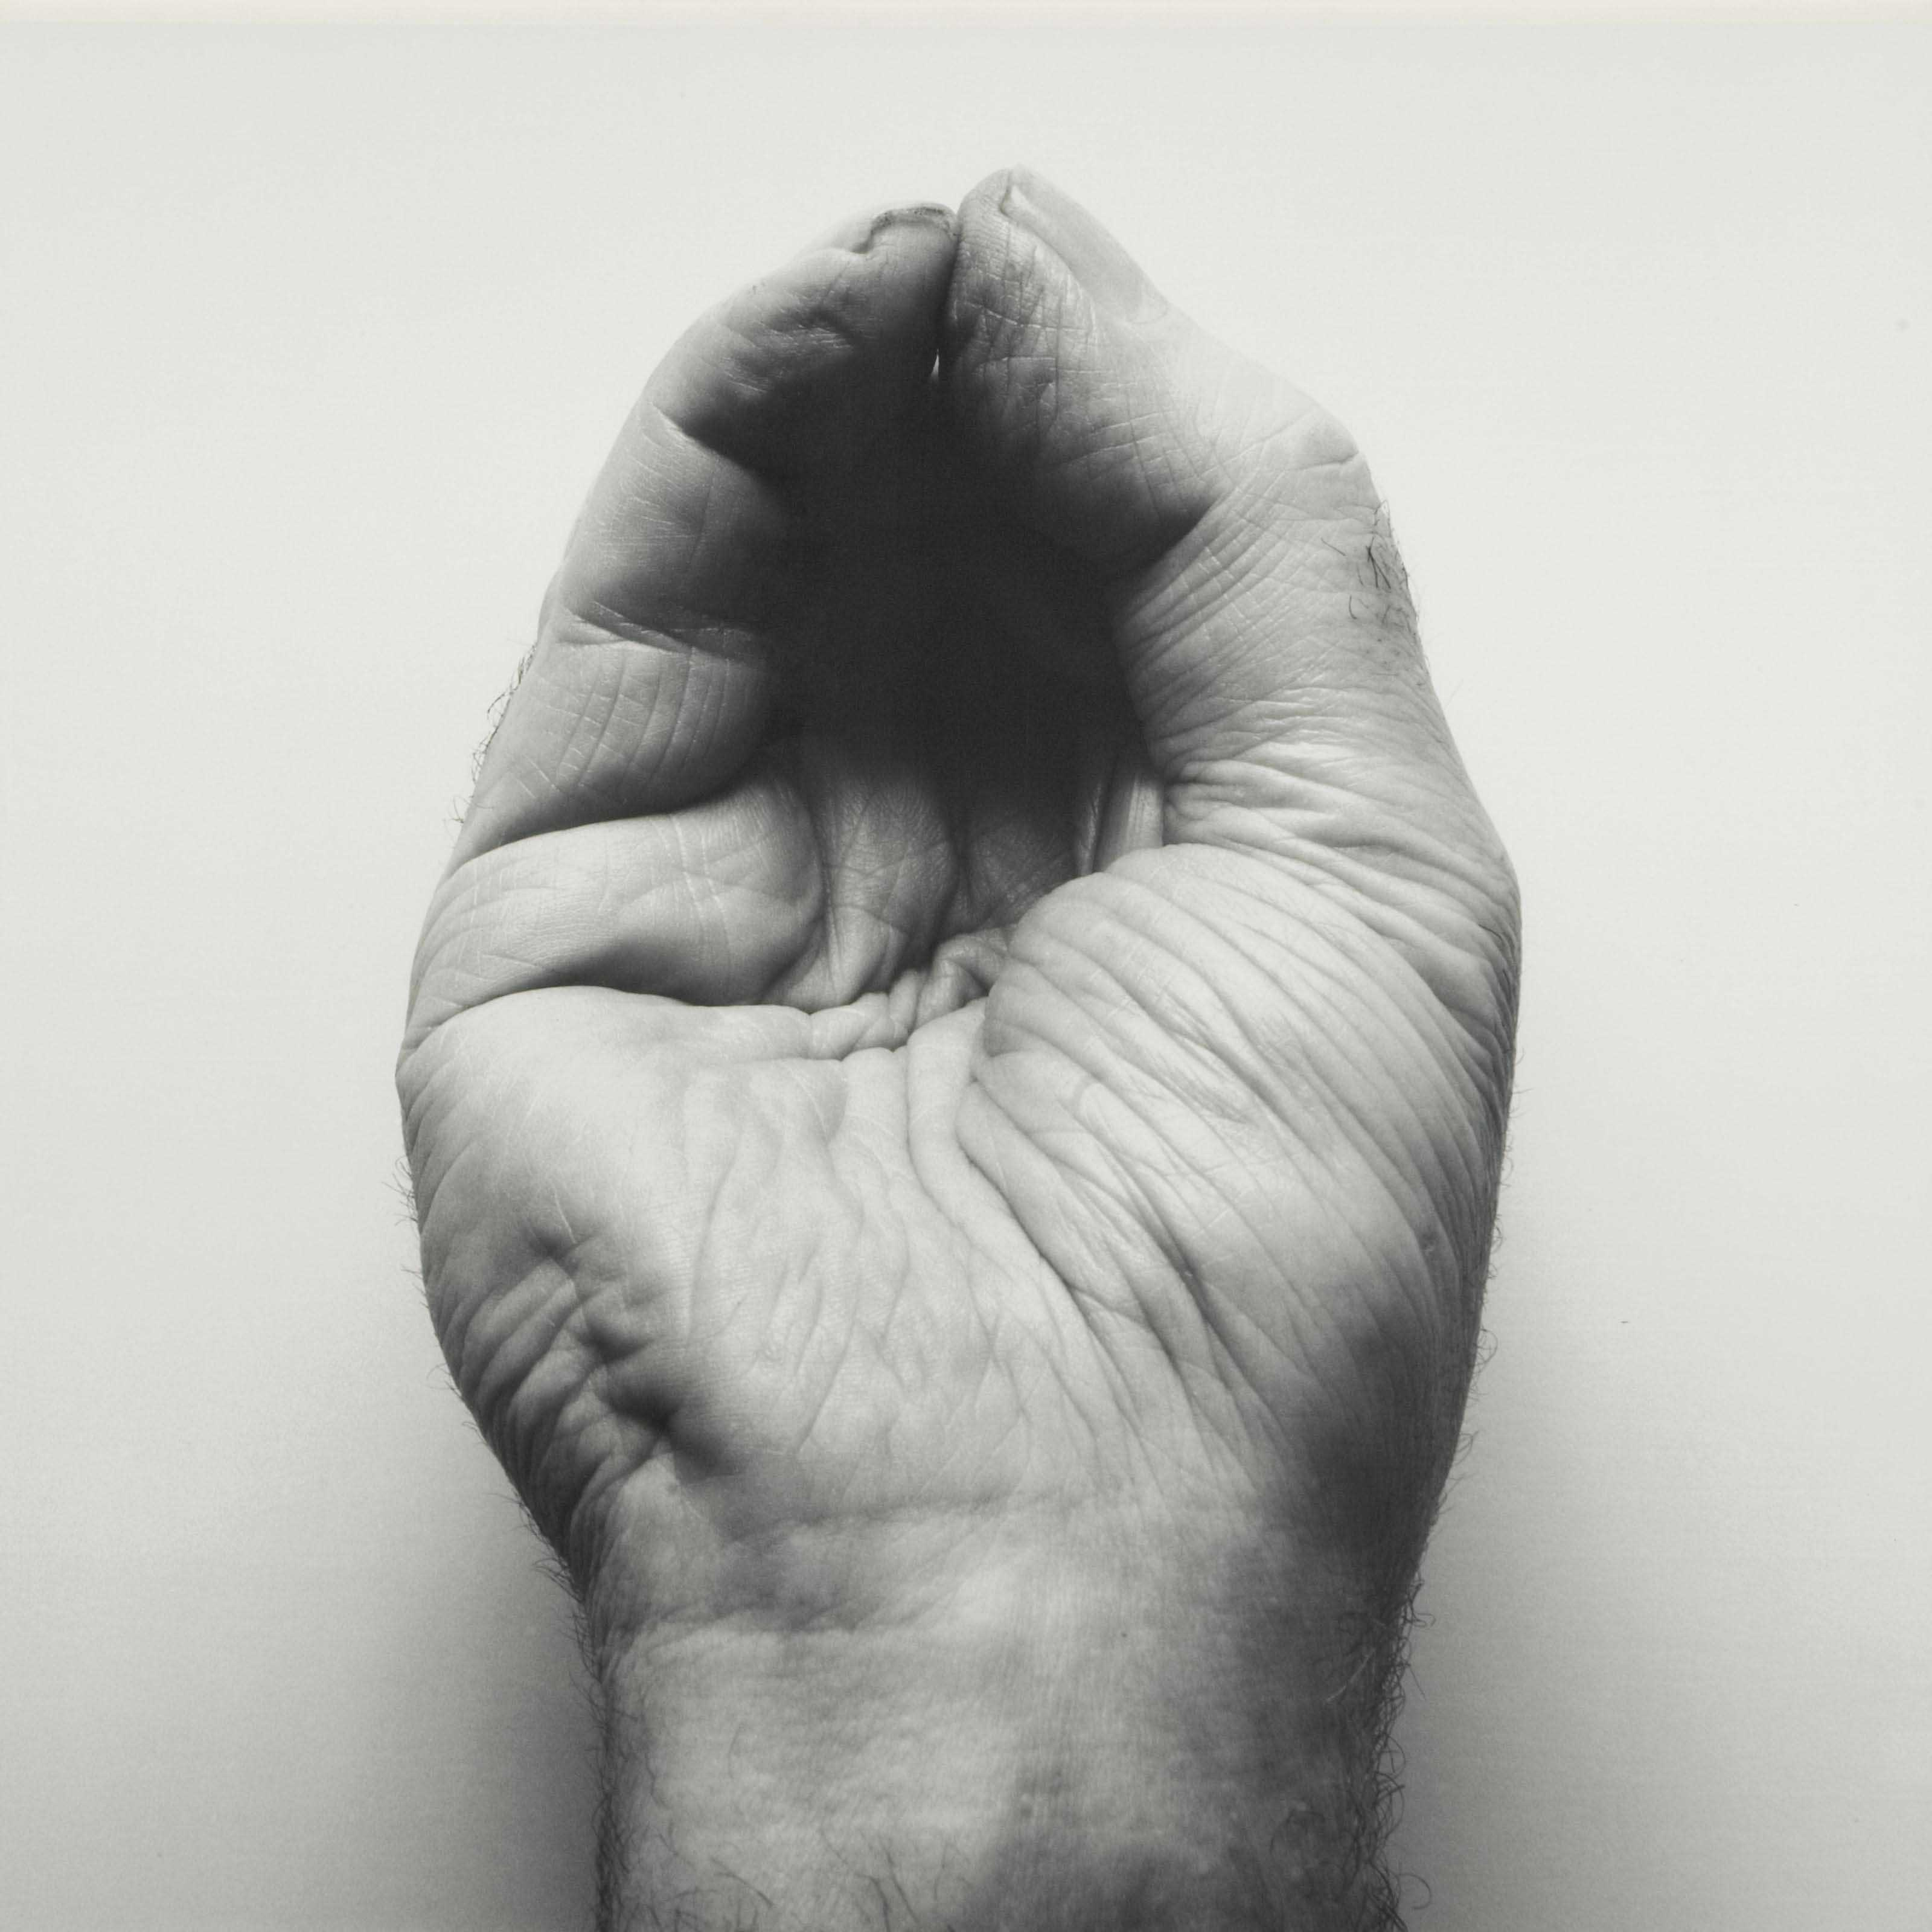 Self-Portrait (Front Hand, Pinched), 1988